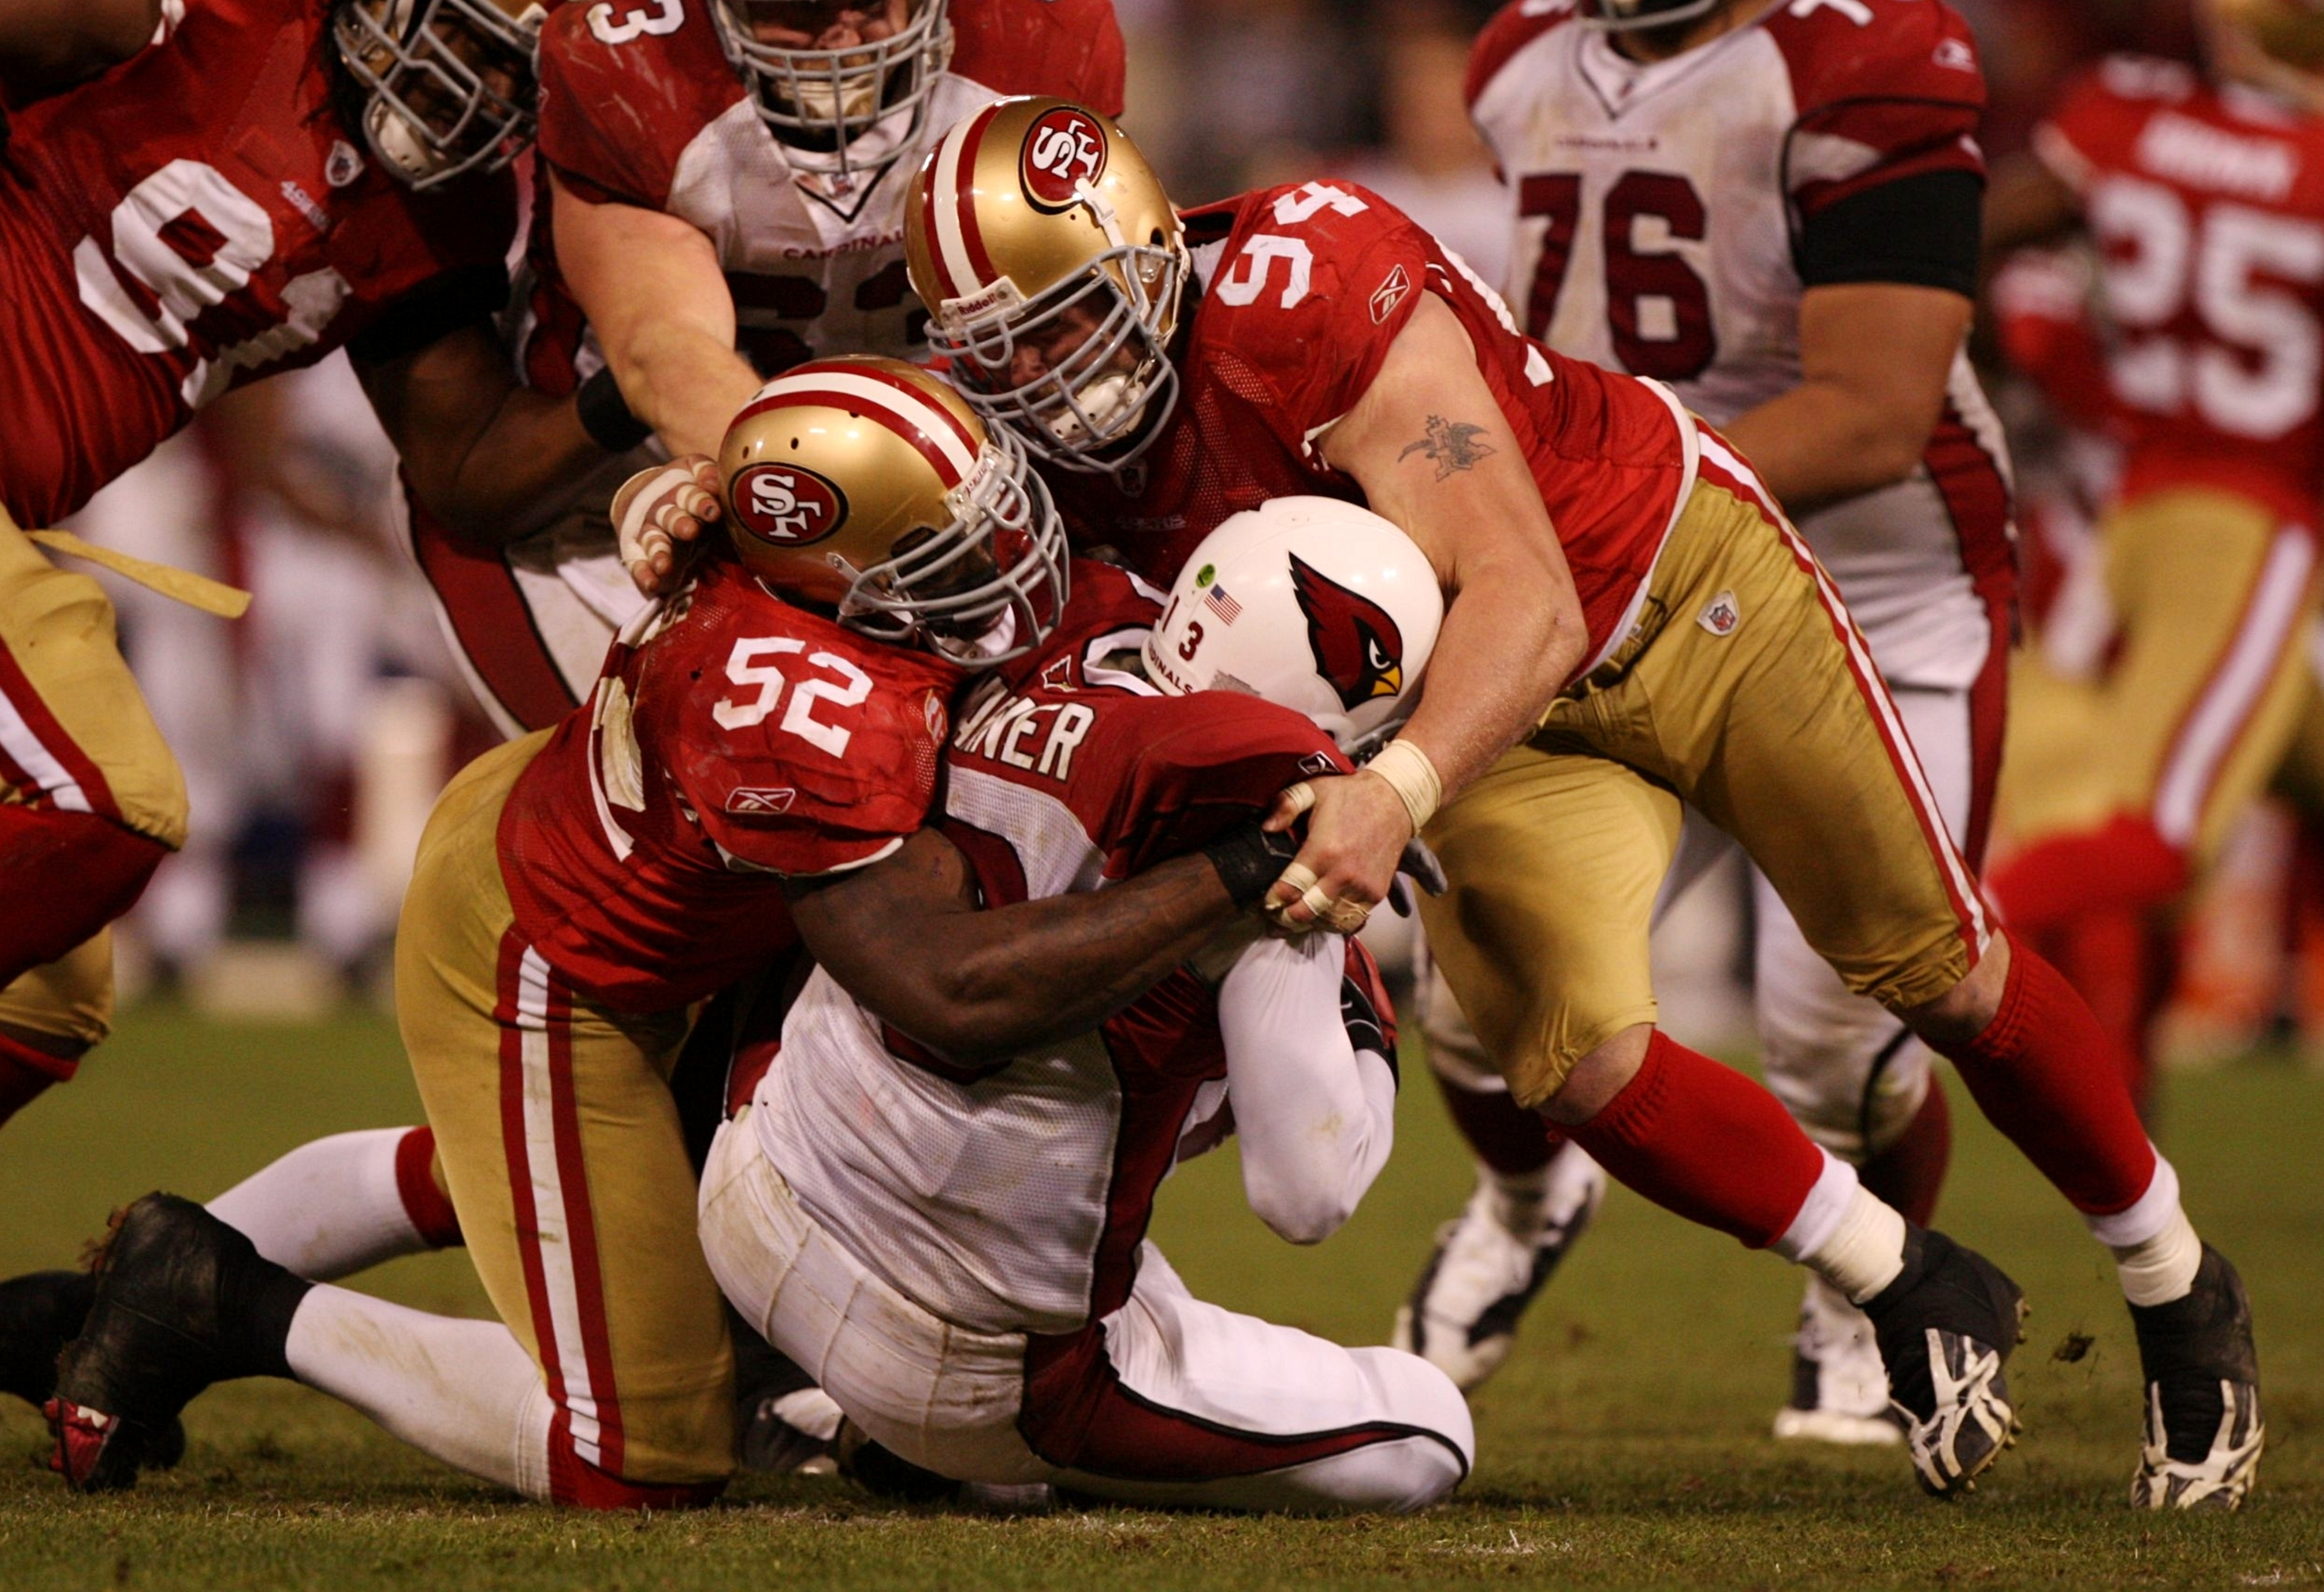 Justin Smith and Patrick Willis Combine For A Sack